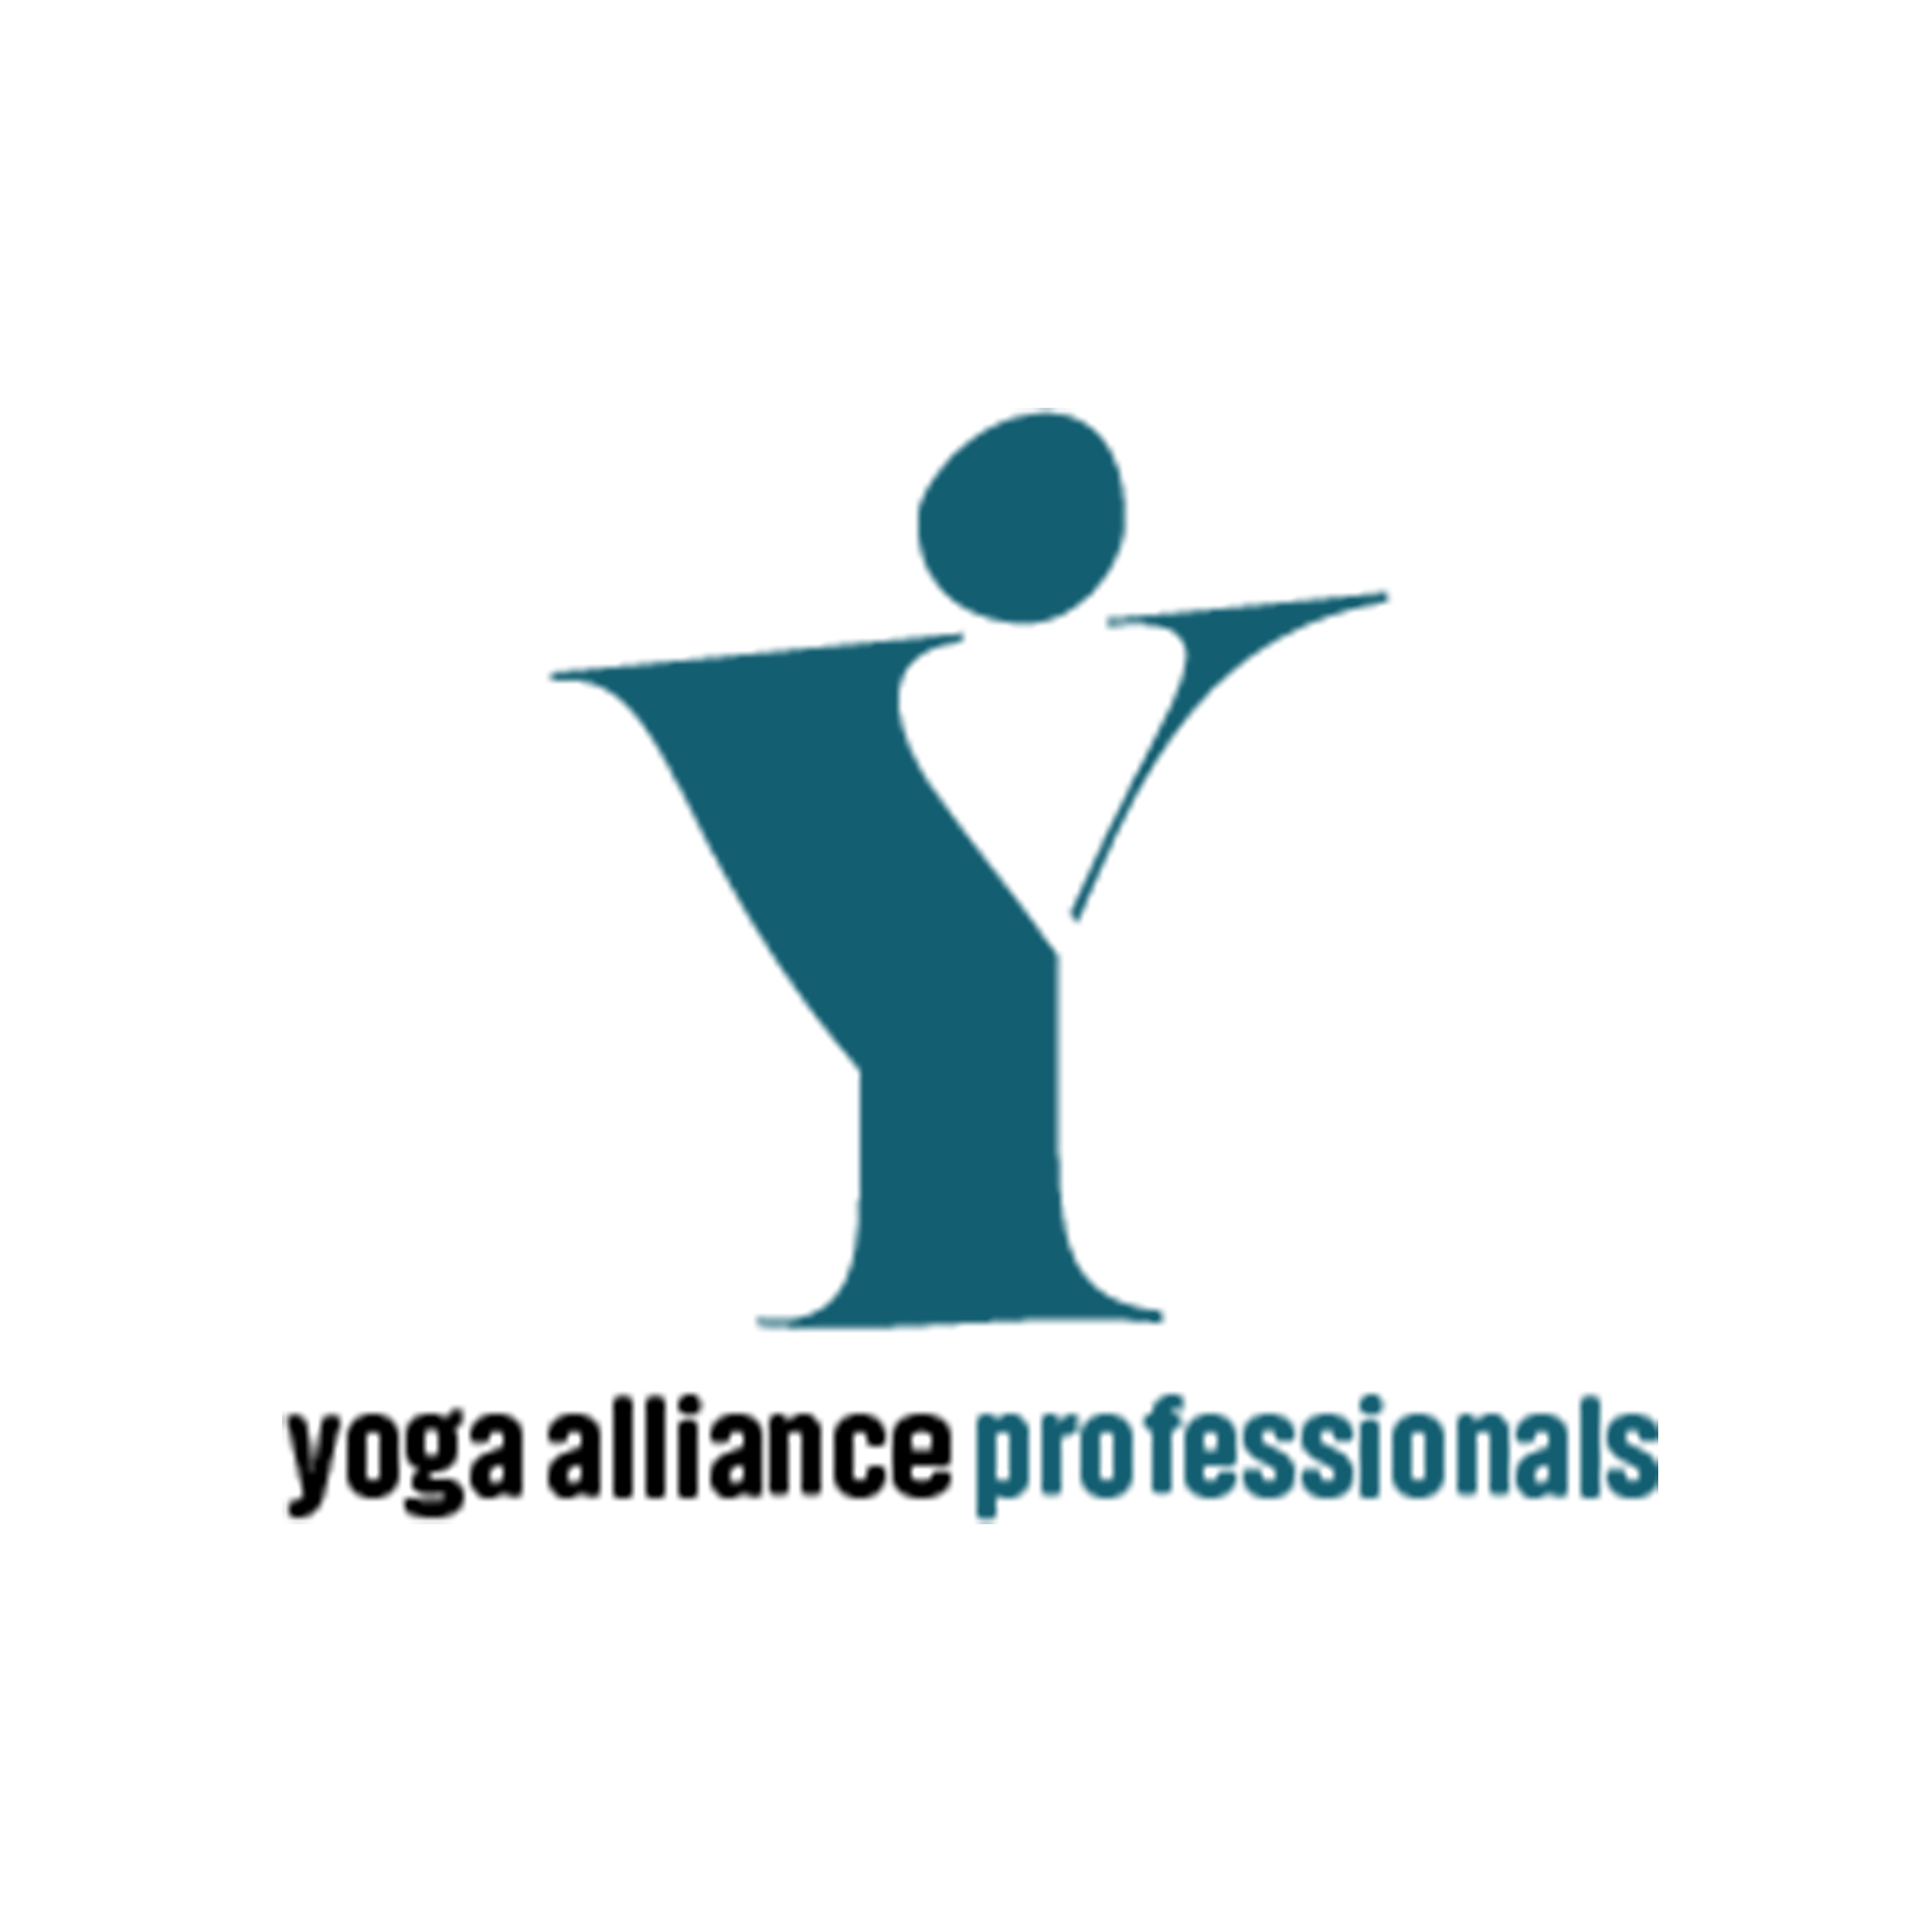 About Yoga Alliance Professionals